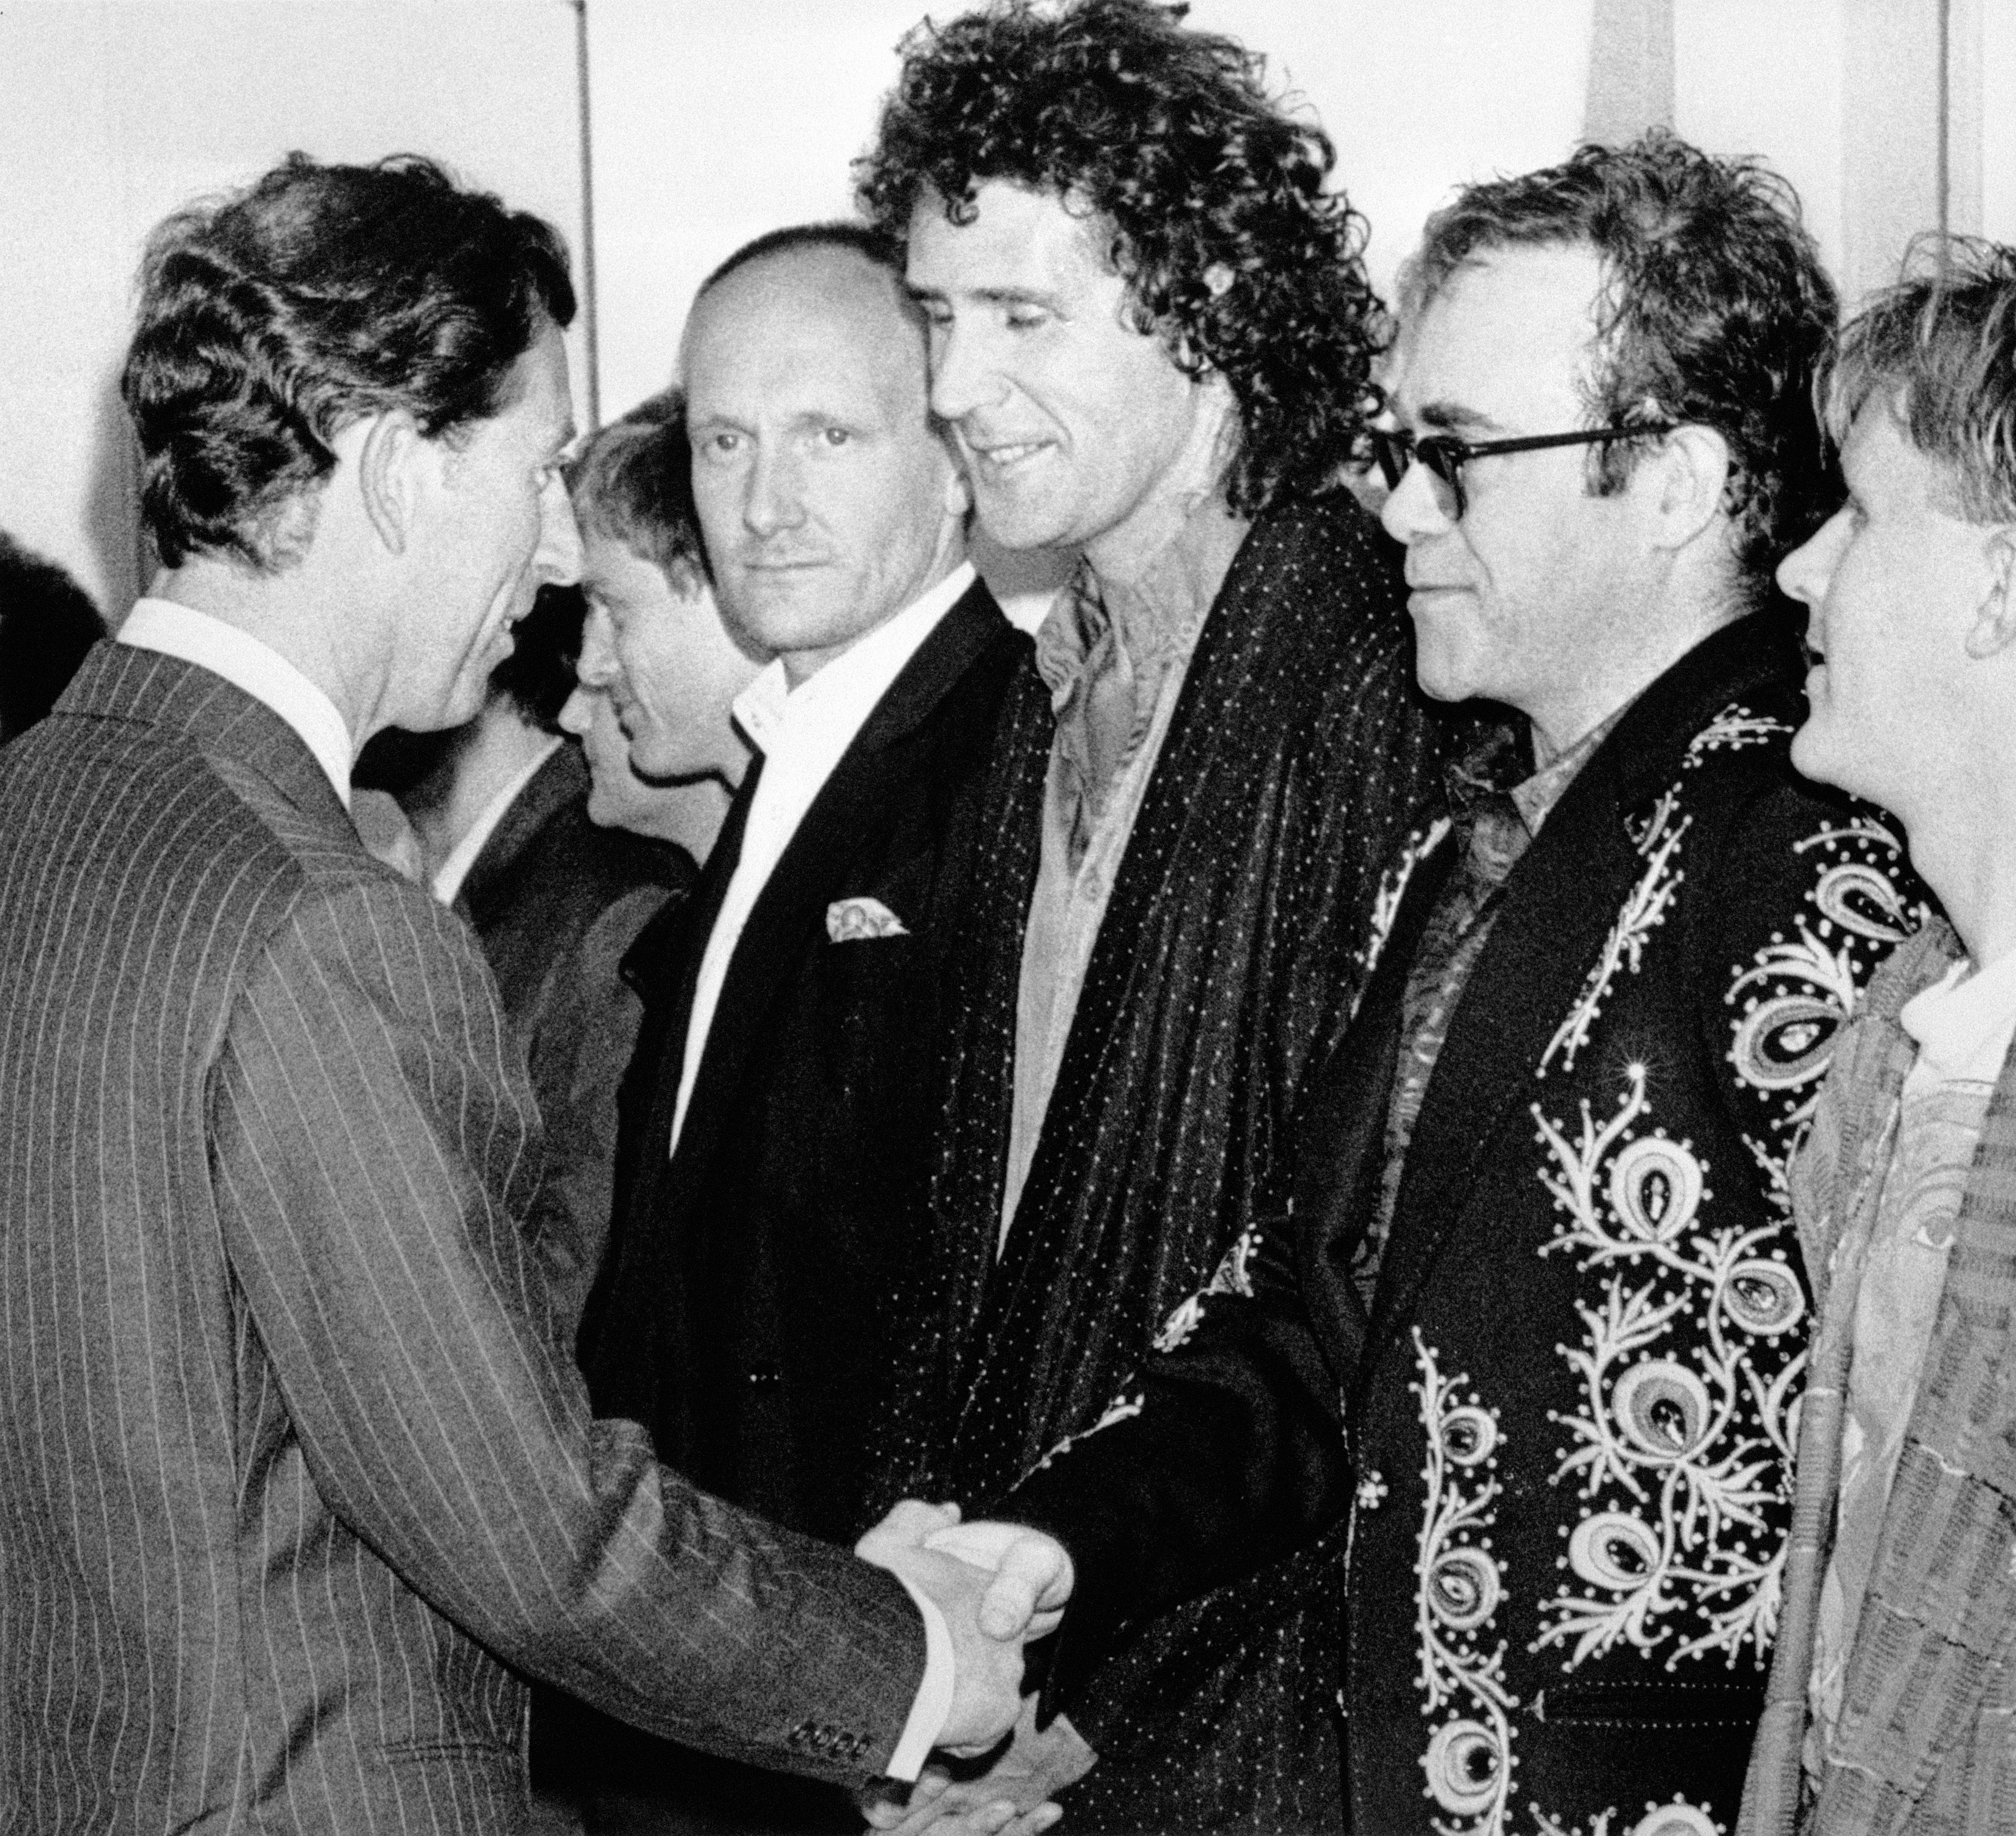 The Prince of Wales shakes hands with Elton John, flanked by his drummer Ray Cooper (l) and Dire Strait's bassist John Illsley (centre) before tonight's rock extravaganza at Wembley to celebrate 10 years of the Prince's Trust.